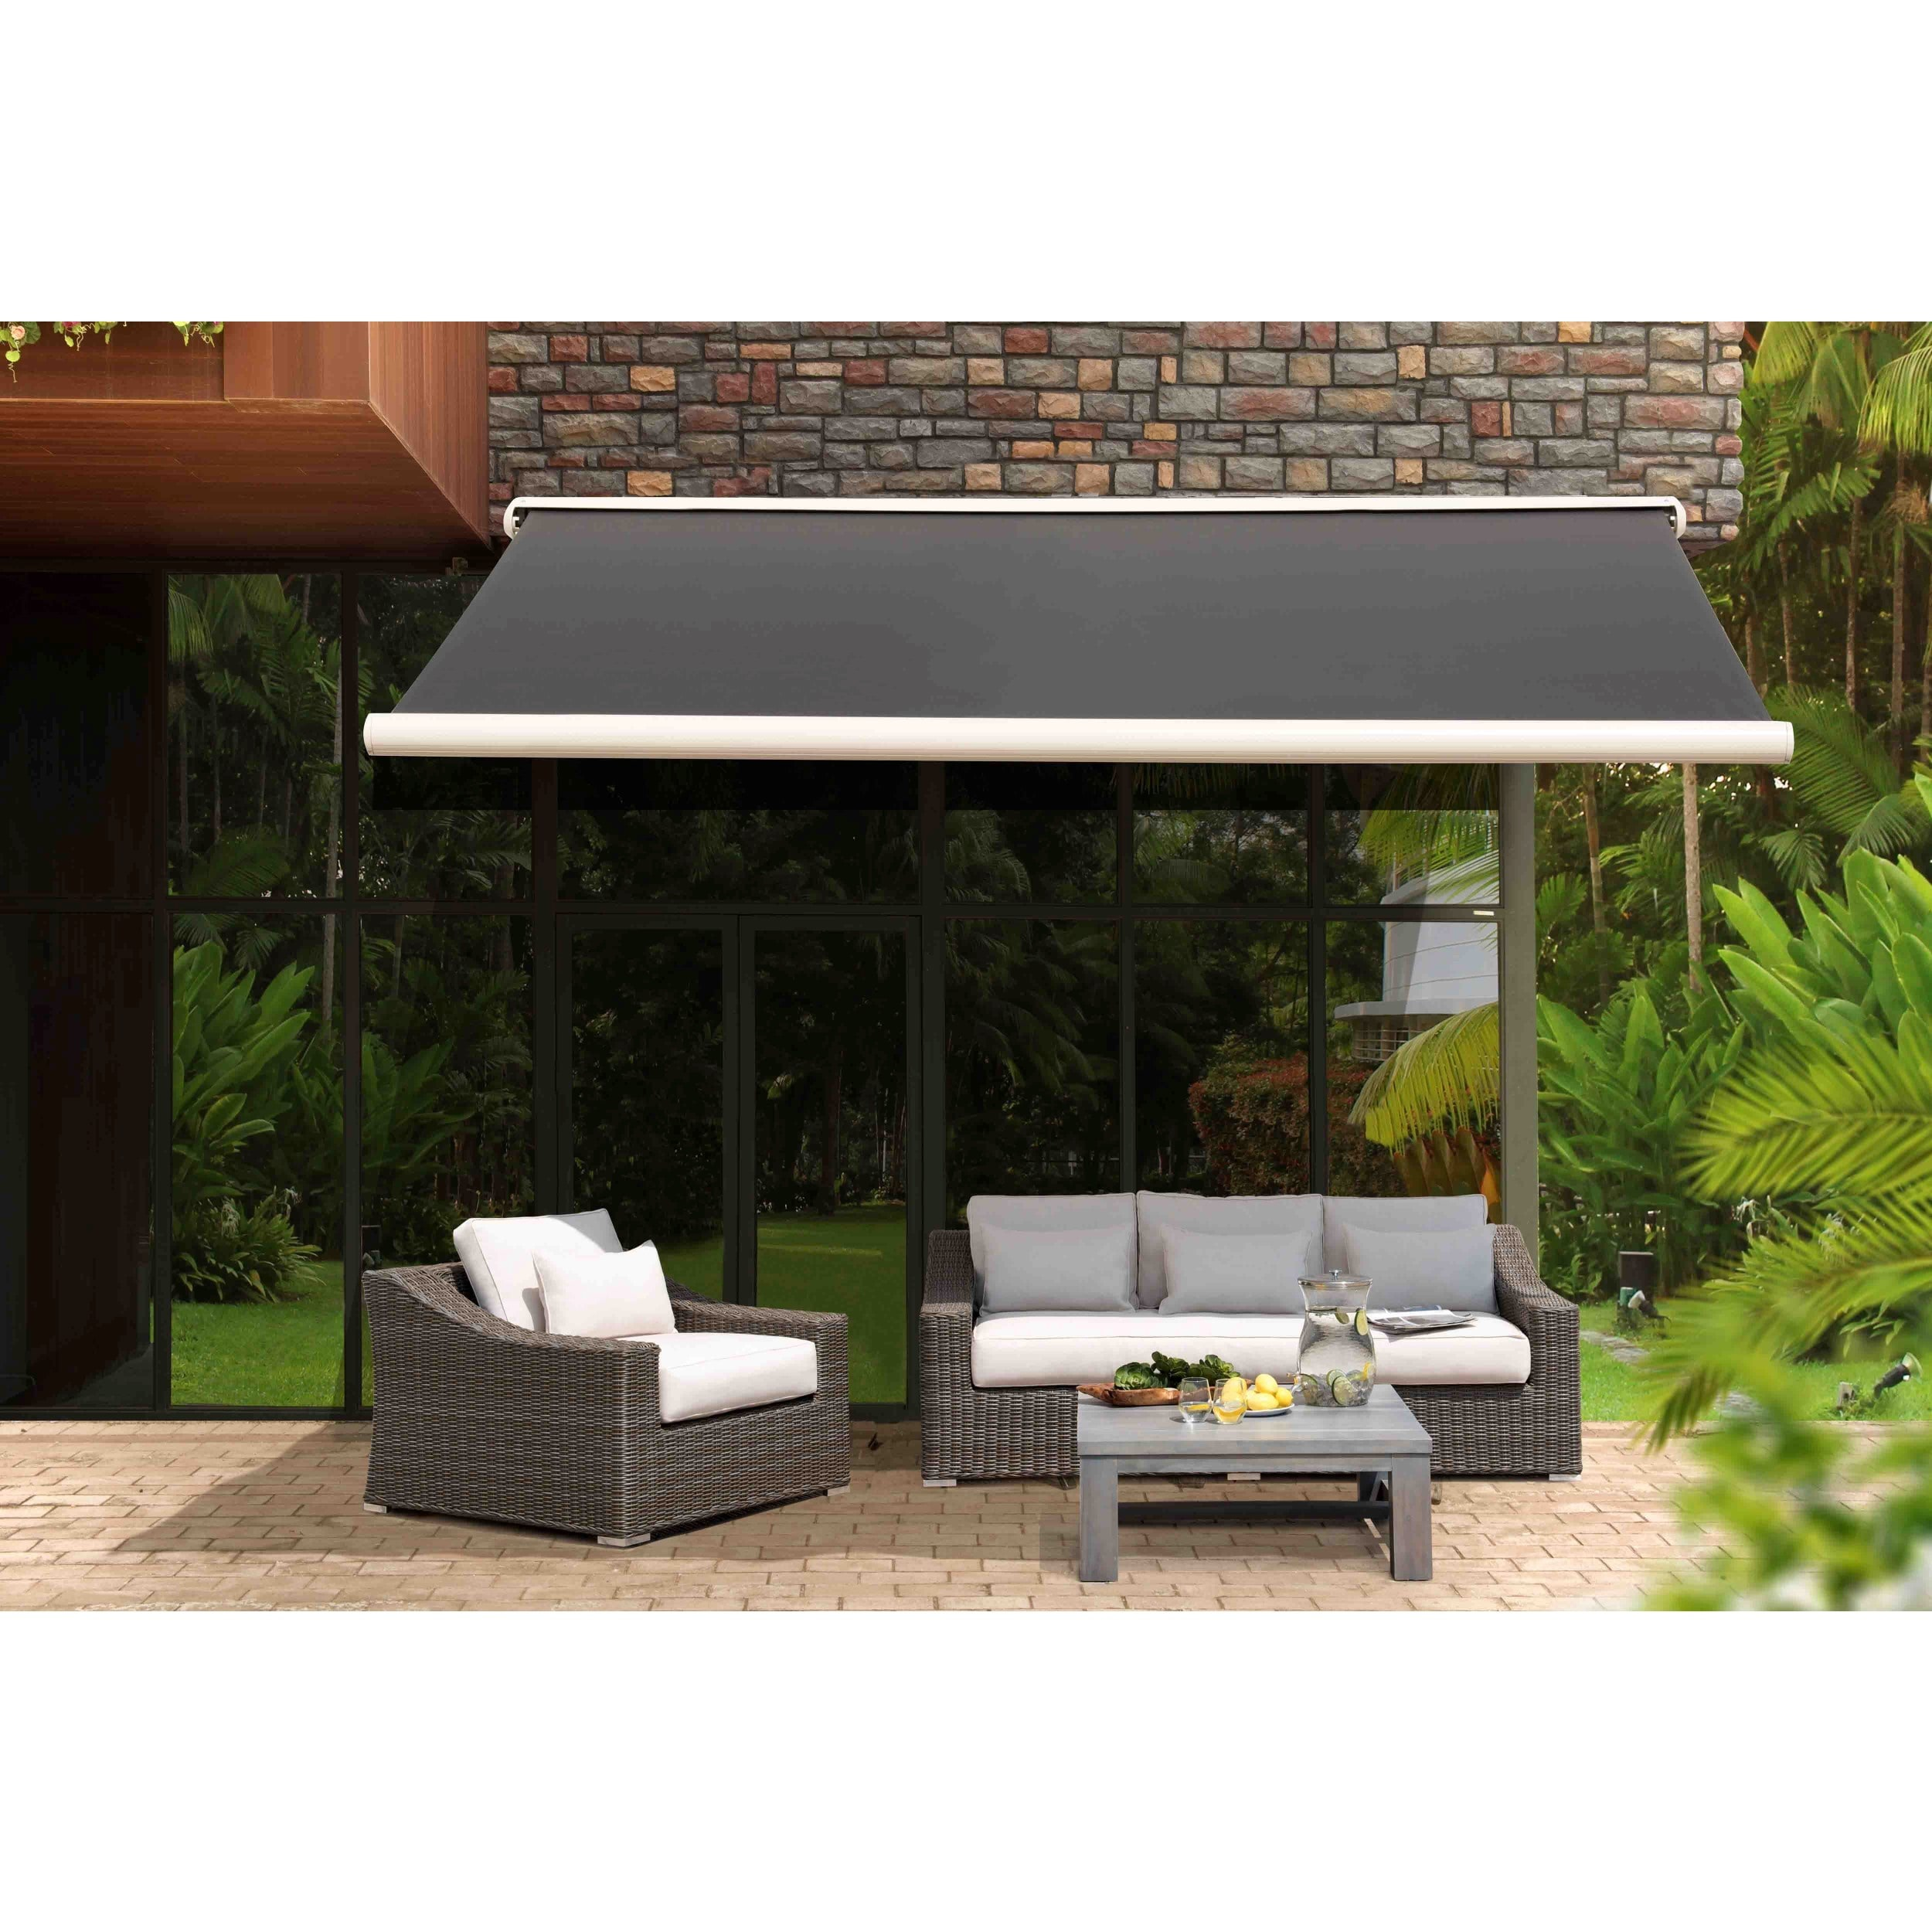 x haven hayneedle motorized retractable ft master awning product sunstopper cfm sun